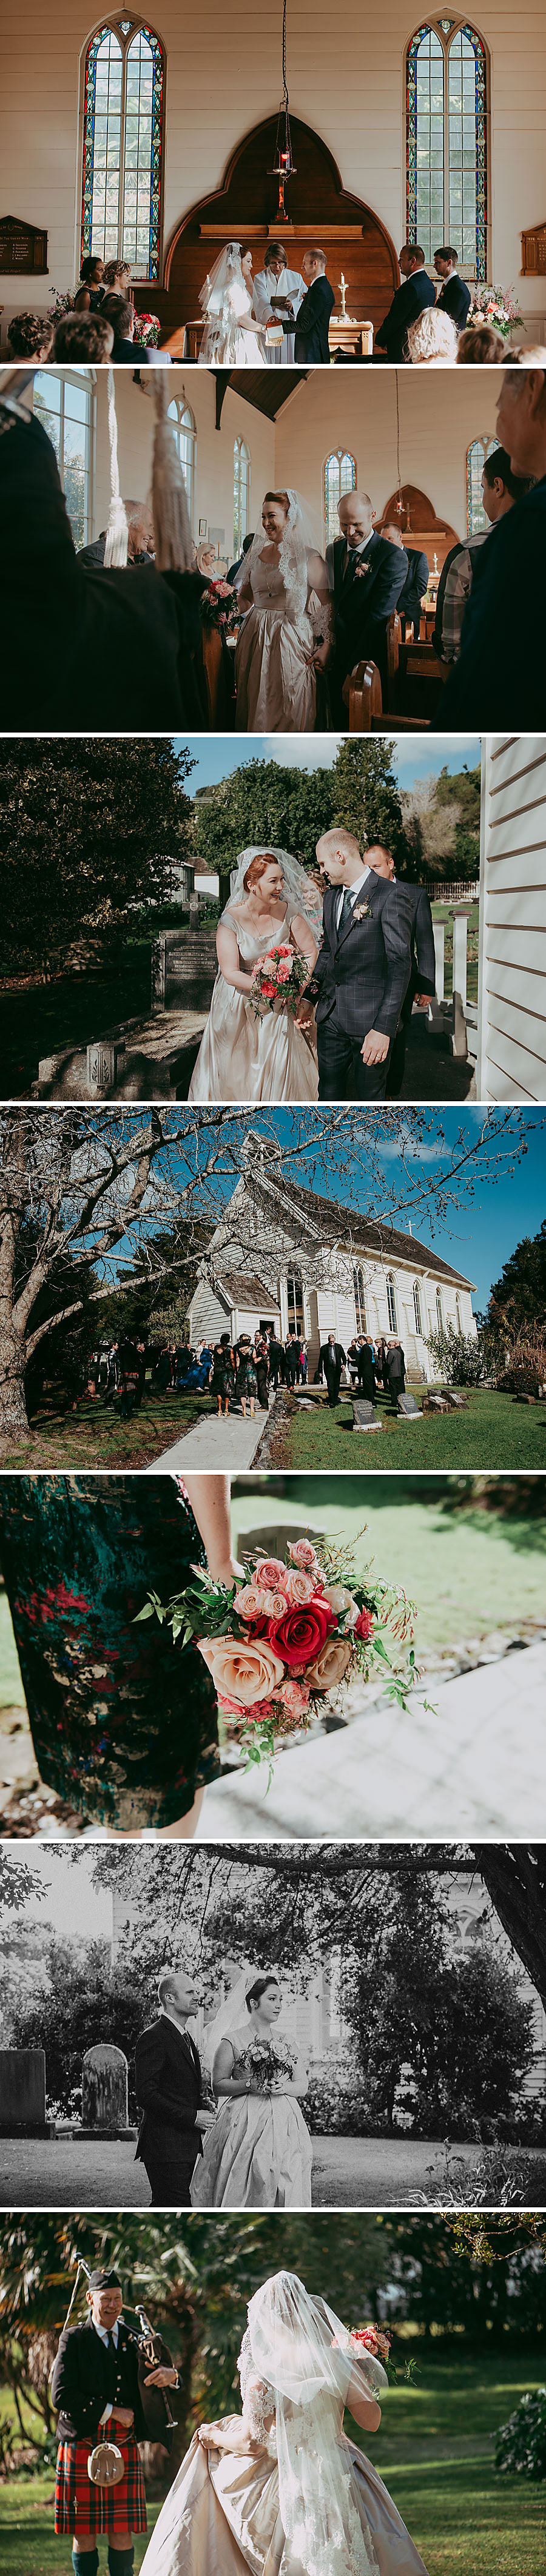 Russell Wedding Photographer Jess Burges